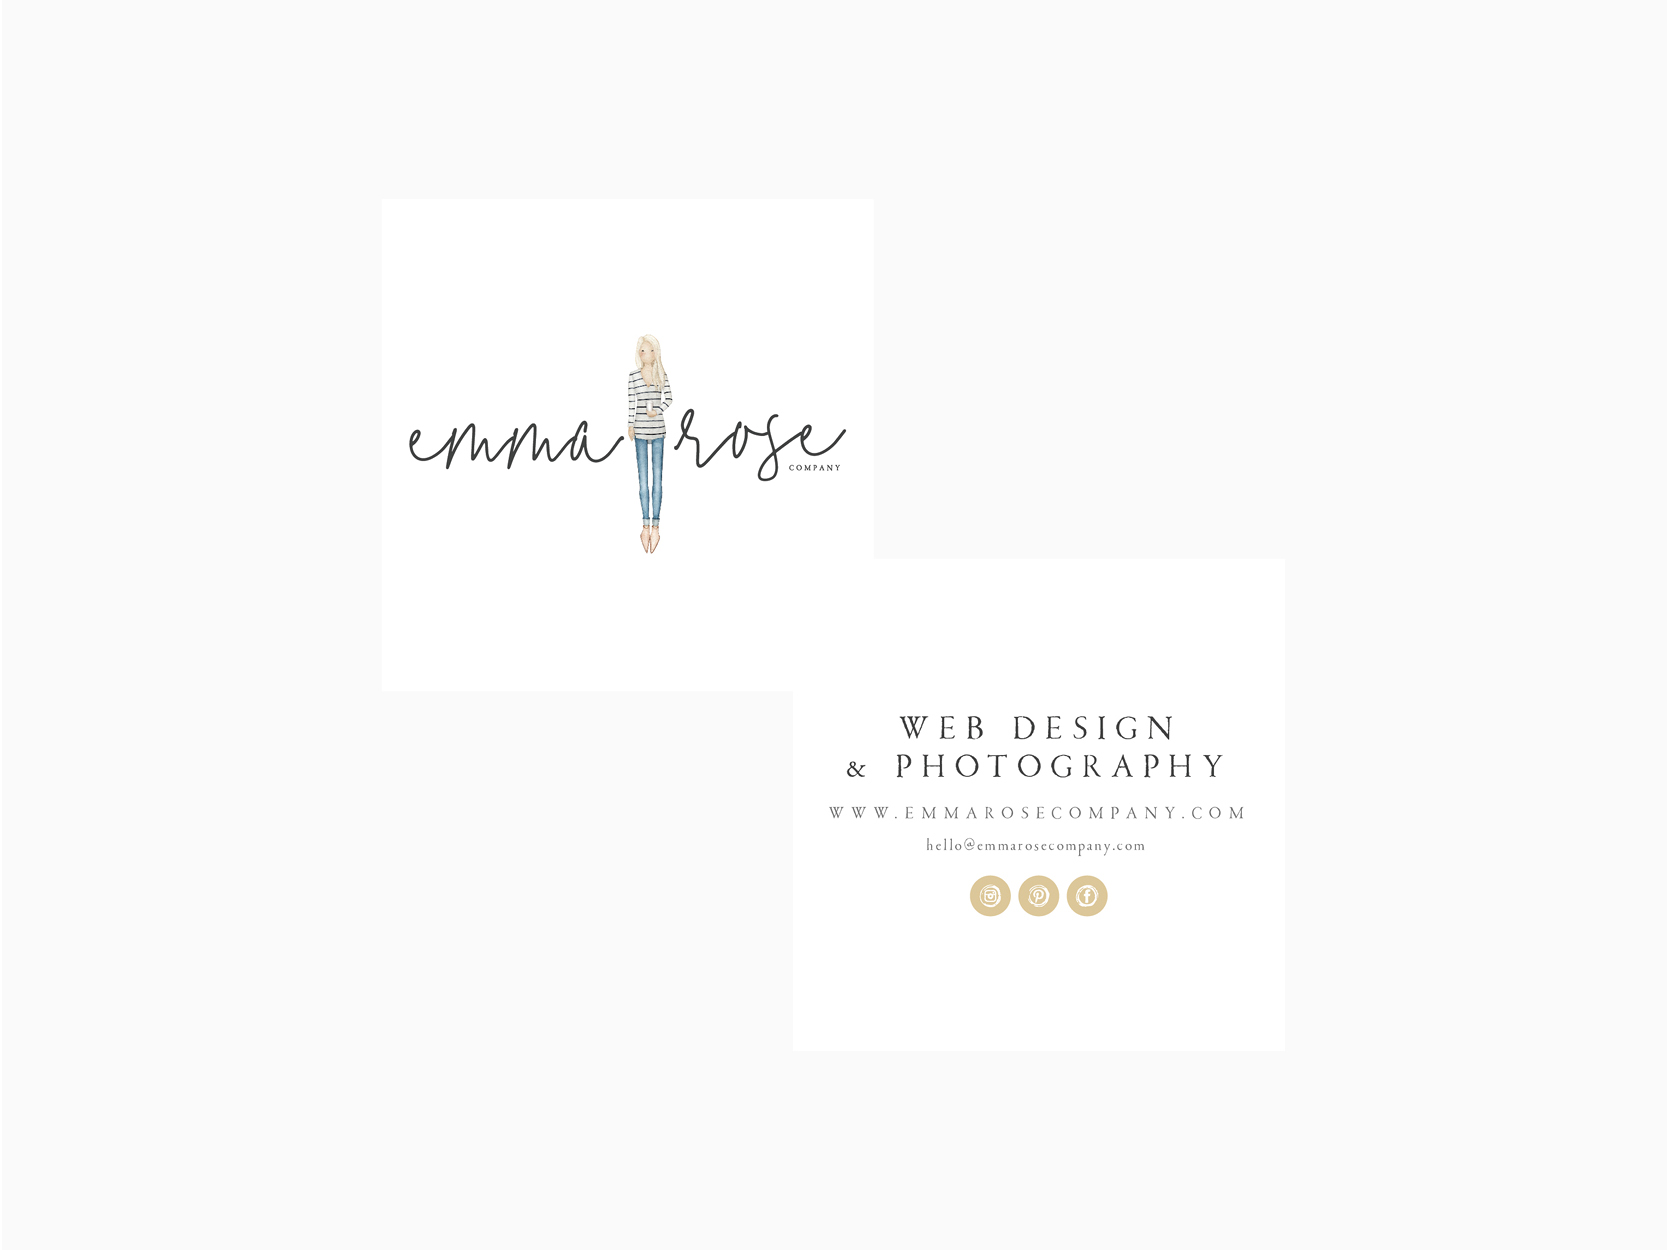 Emma Rose Company Squarespace Website Designer Mustard and Yellow Brand Inspiration #branding #yellowbrand #emmarosecompany